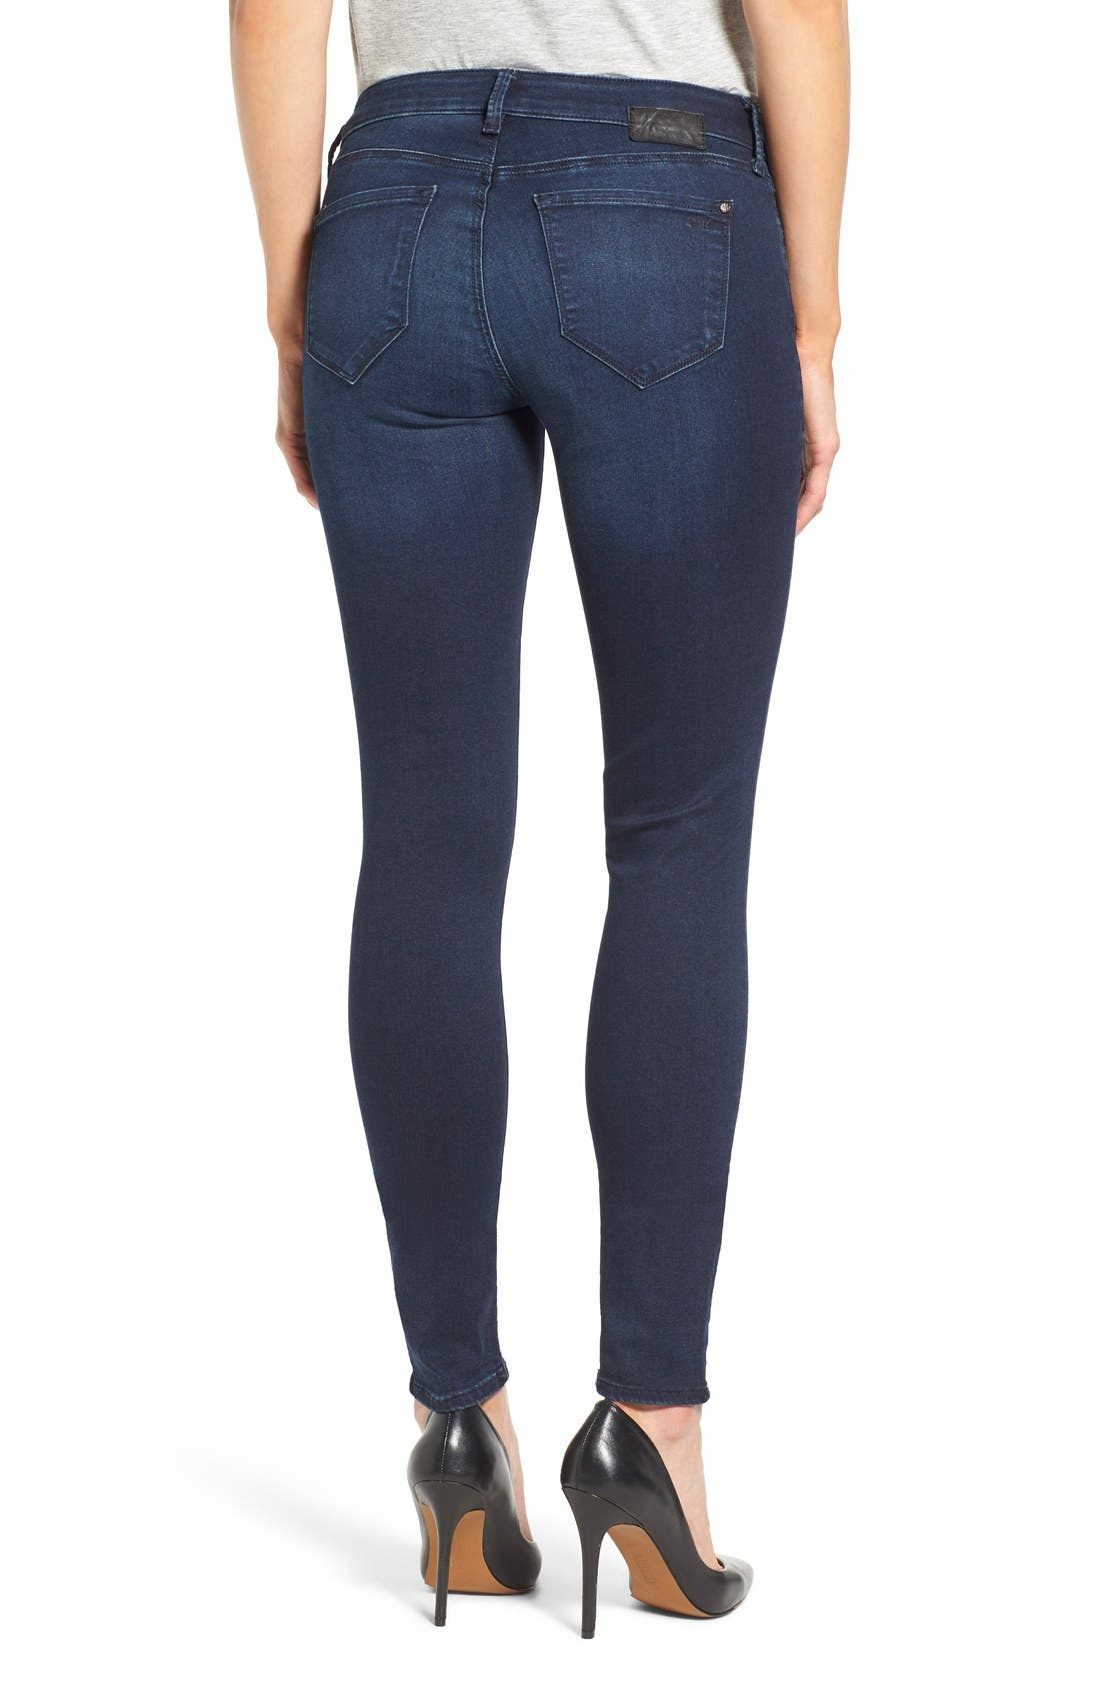 'Adriana' Stretch Skinny Jeans,                             Alternate thumbnail 2, color,                             401